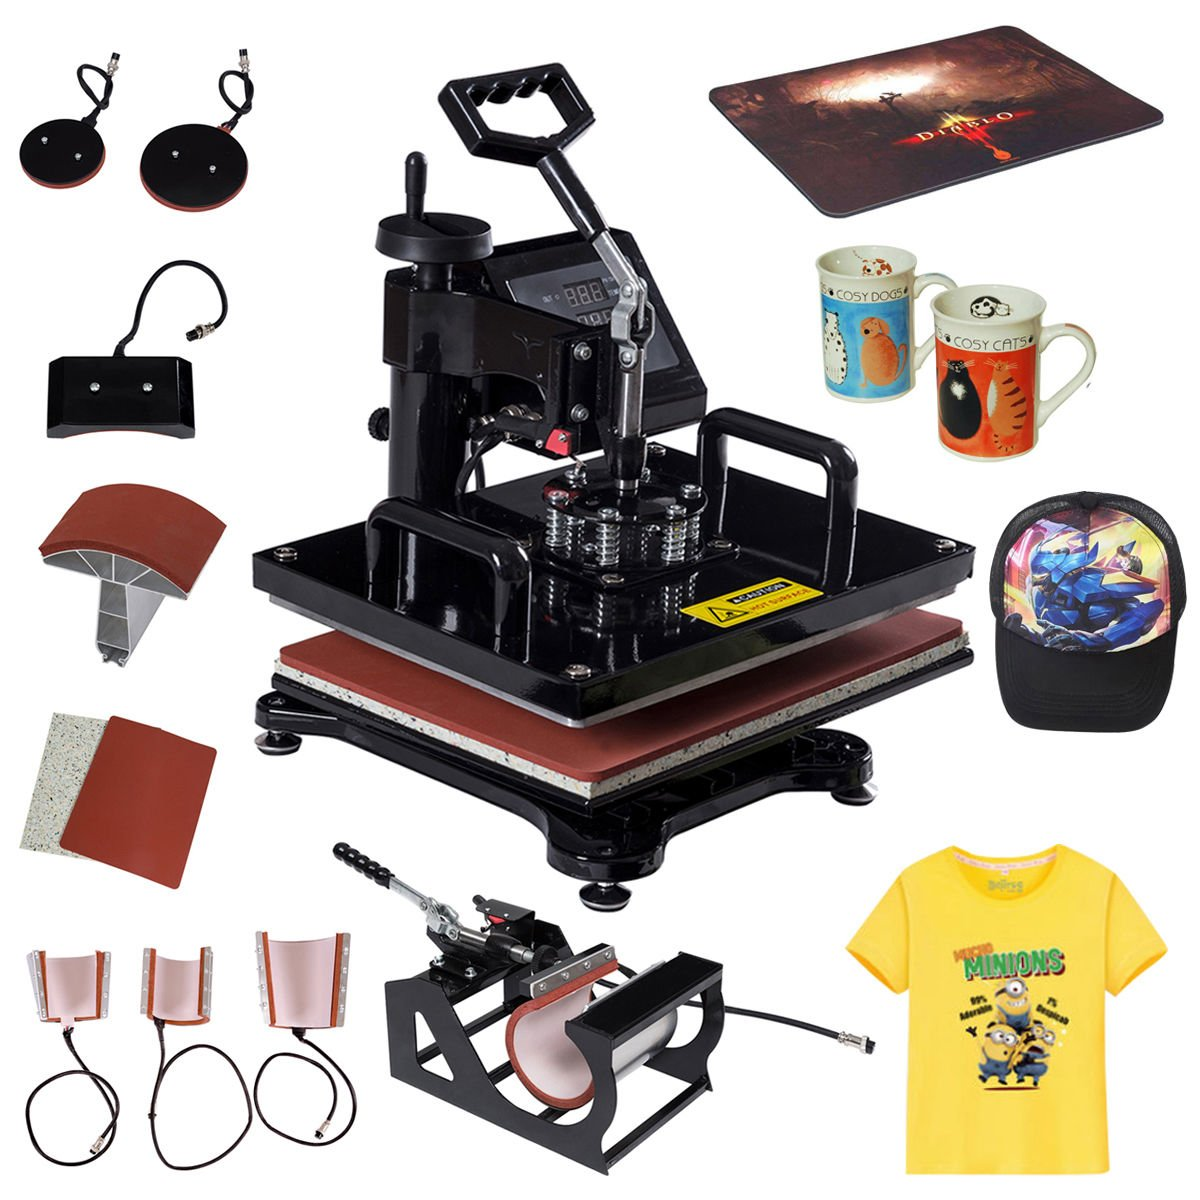 Tangkula 8 in 1 Heat Press Machine Digital Transfer Sublimation T-Shirt Mug Hat Plate Cap